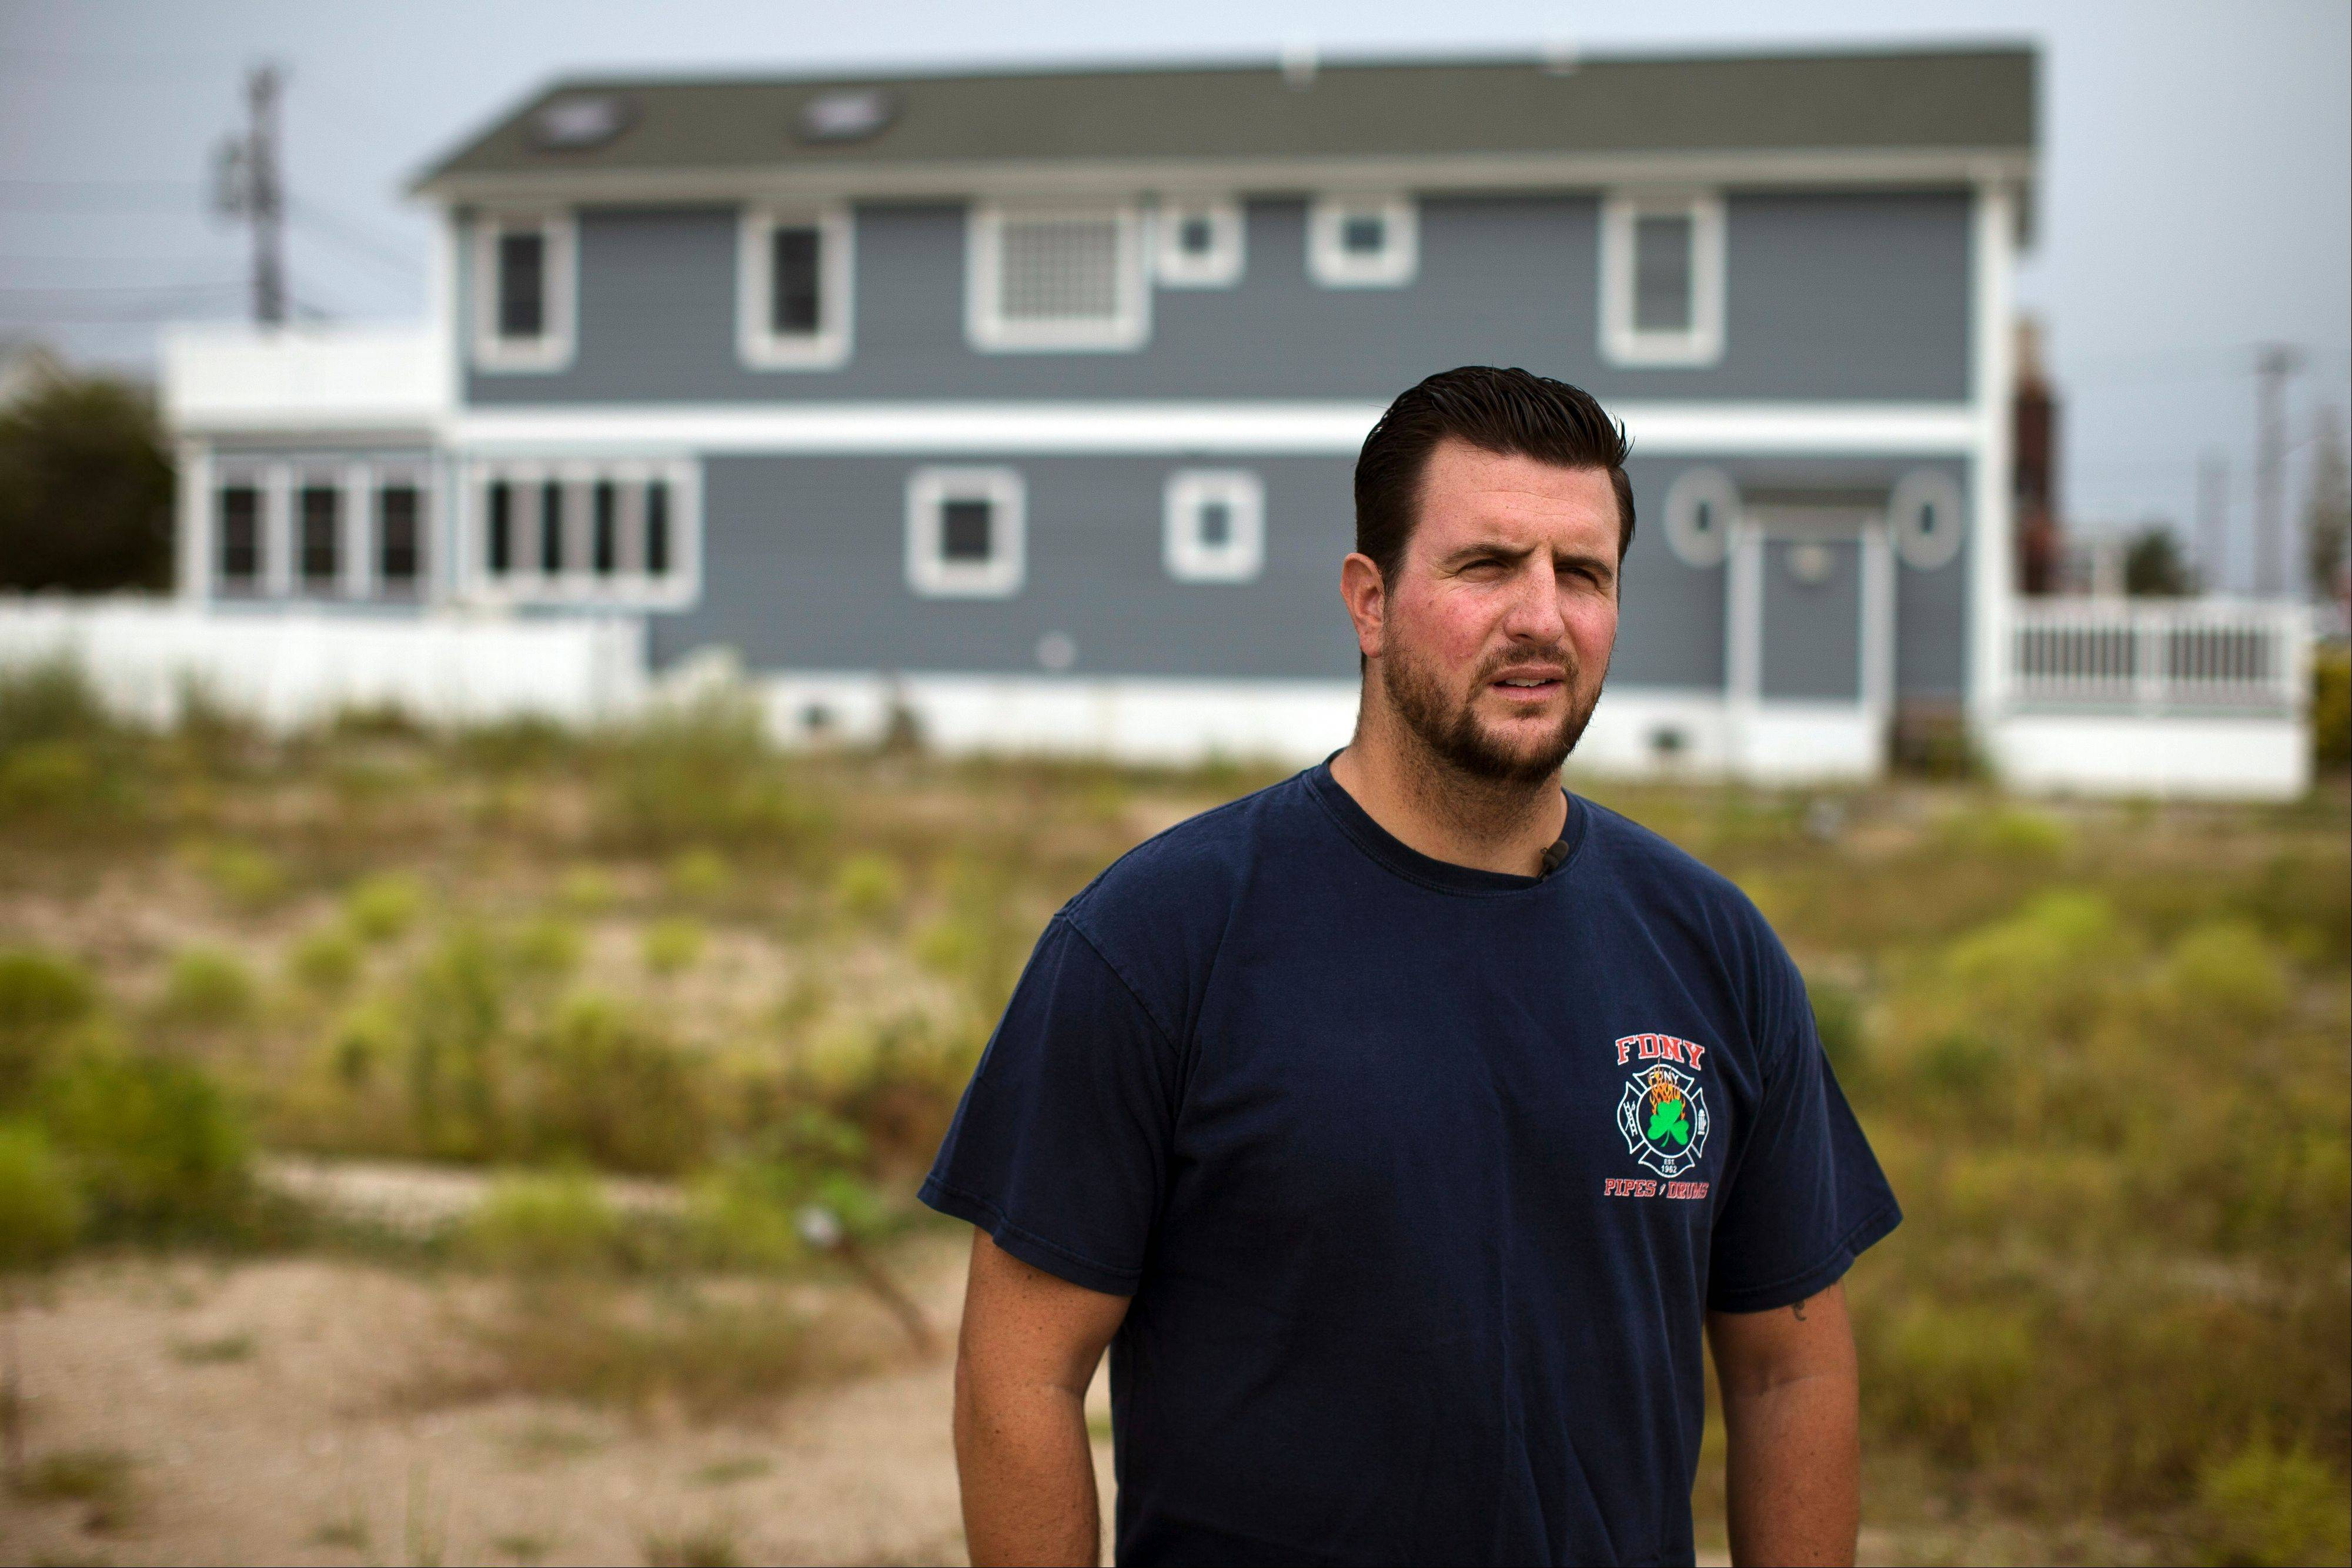 Patrick Dowdell speaks to a reporter in the empty lots where his neighbors houses once stood before they were washed away by Superstorm Sandy, in the Breezy Point neighborhood of New York�s Queens borough. His home, seen behind him, was flooded during the storm, destroying treasured photographs of his firefighter father who perished in the attacks of Sept. 11.